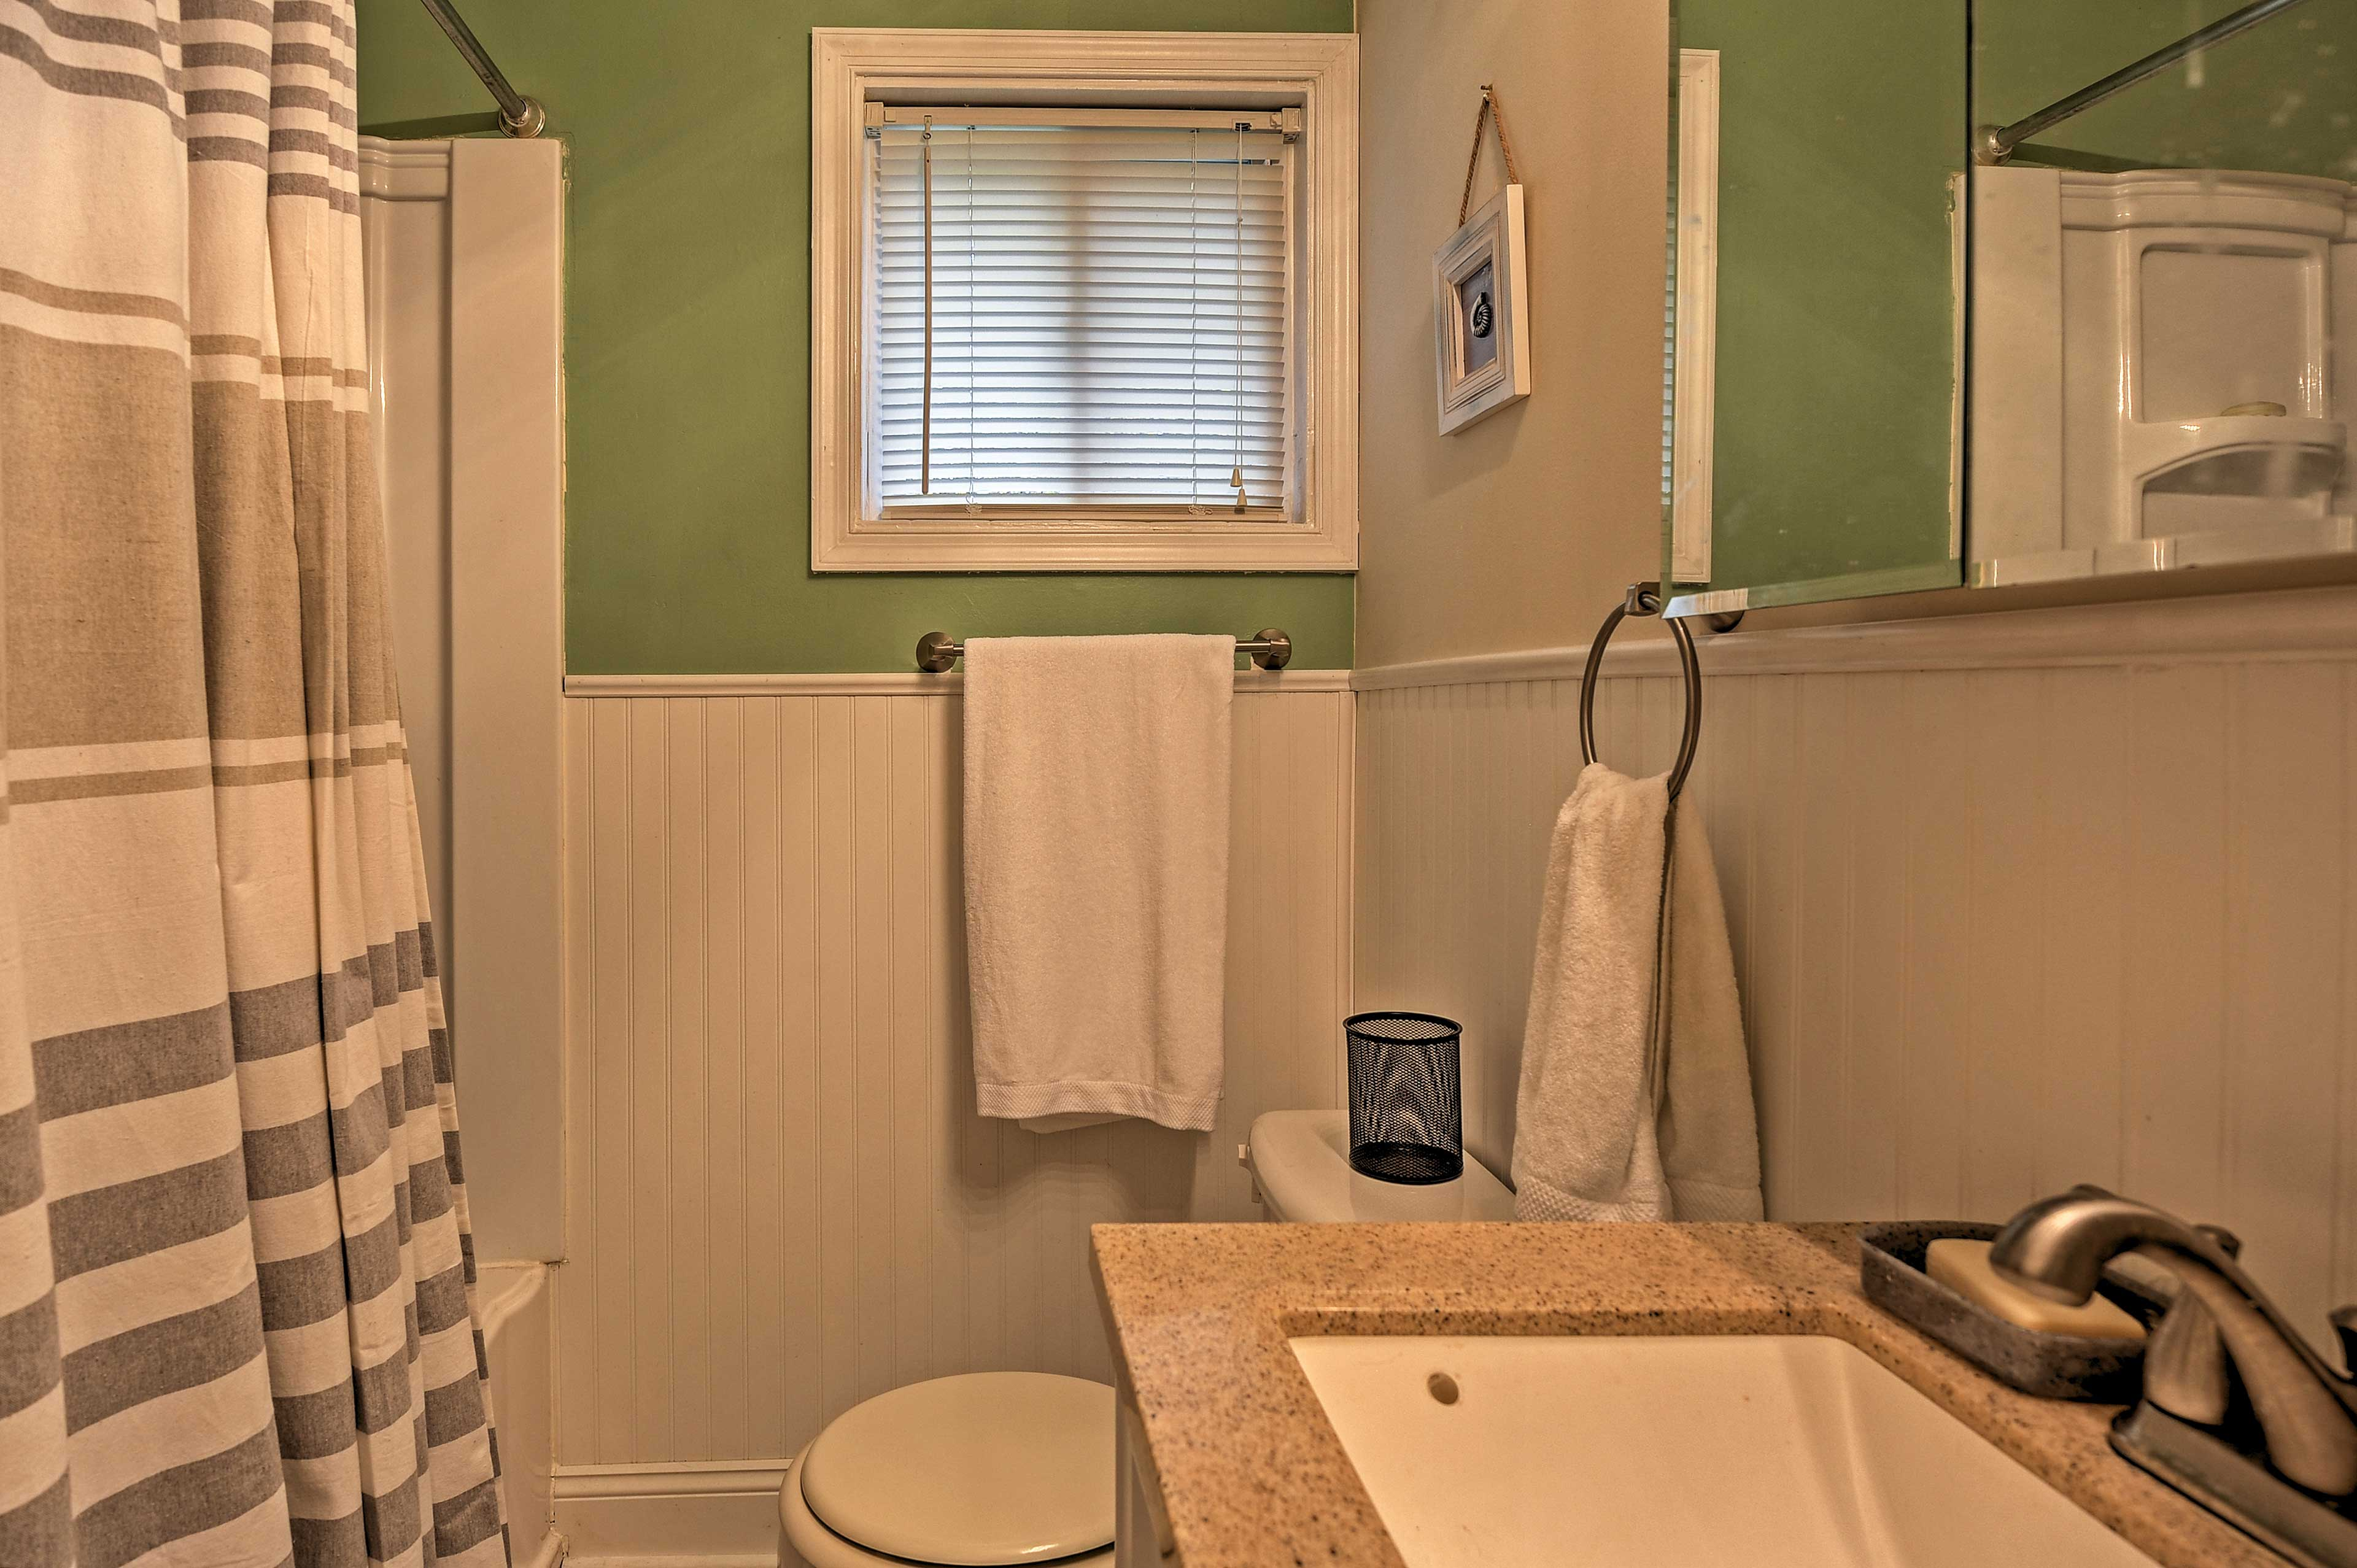 The home's bathroom features a shower/tub combo and granite sink.